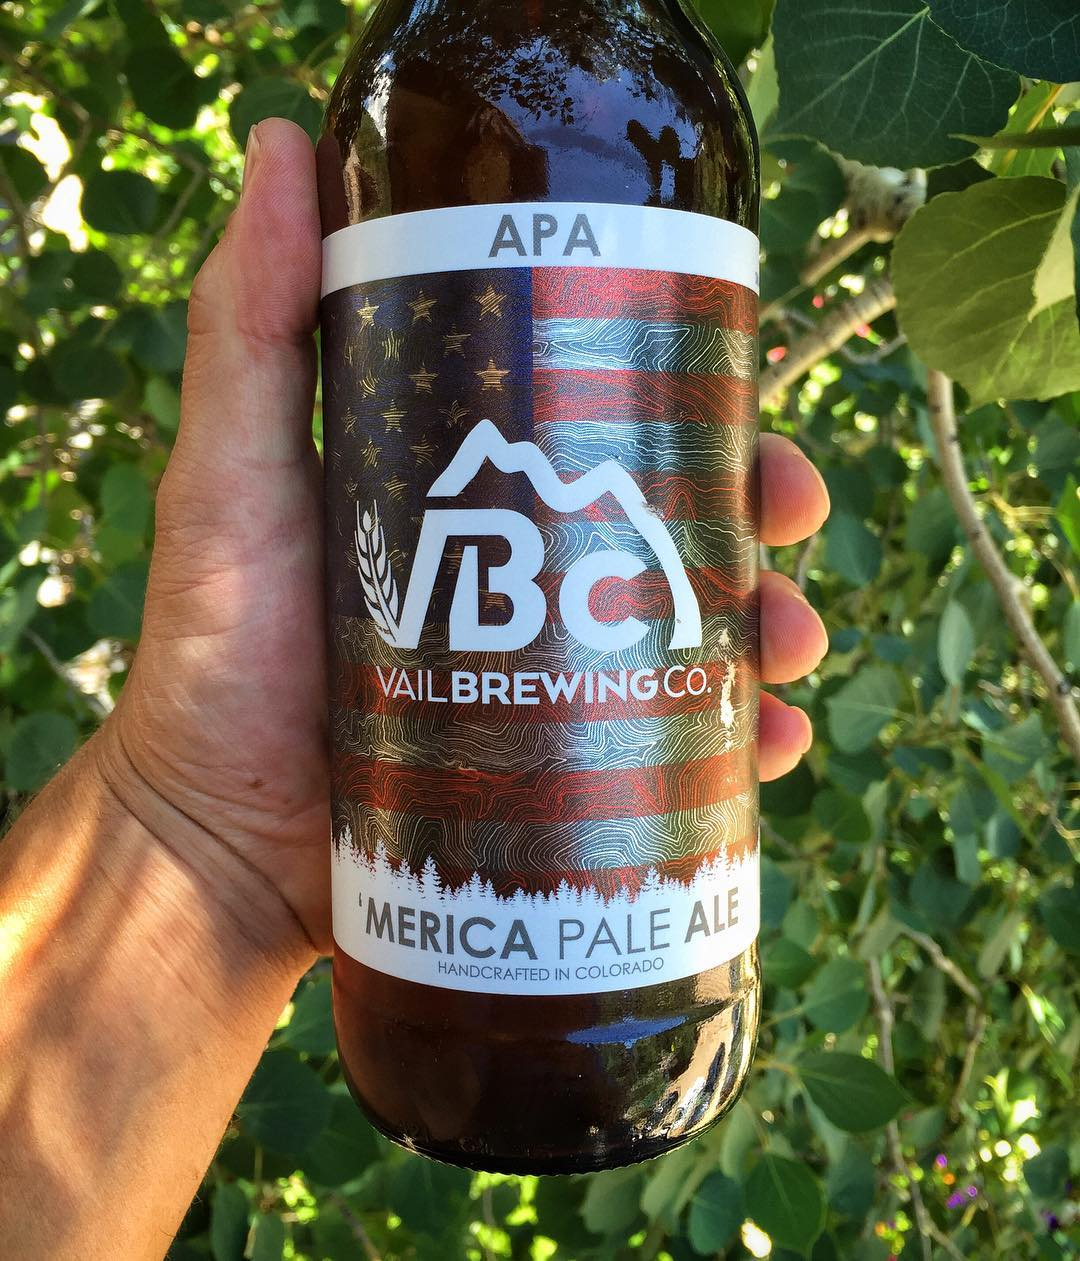 Happy 4th everyone!  We are doing it right with a very special America Pale Ale from @vailbrewingco - and we could not be more proud of these labels we designed for them